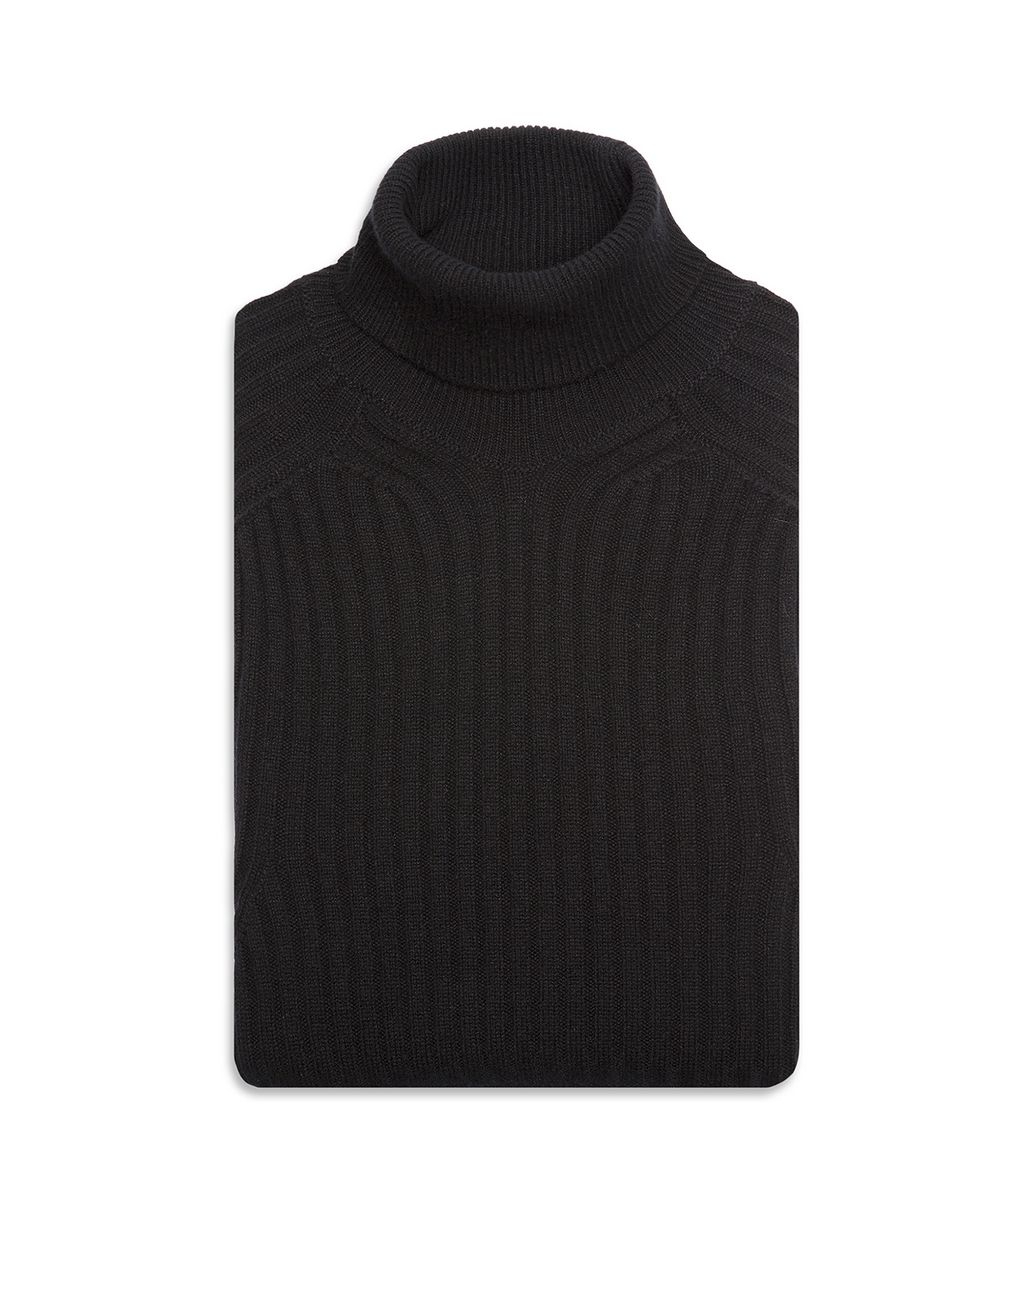 BRIONI Black Cashmere Ribbed Turtleneck Sweater Knitwear U r